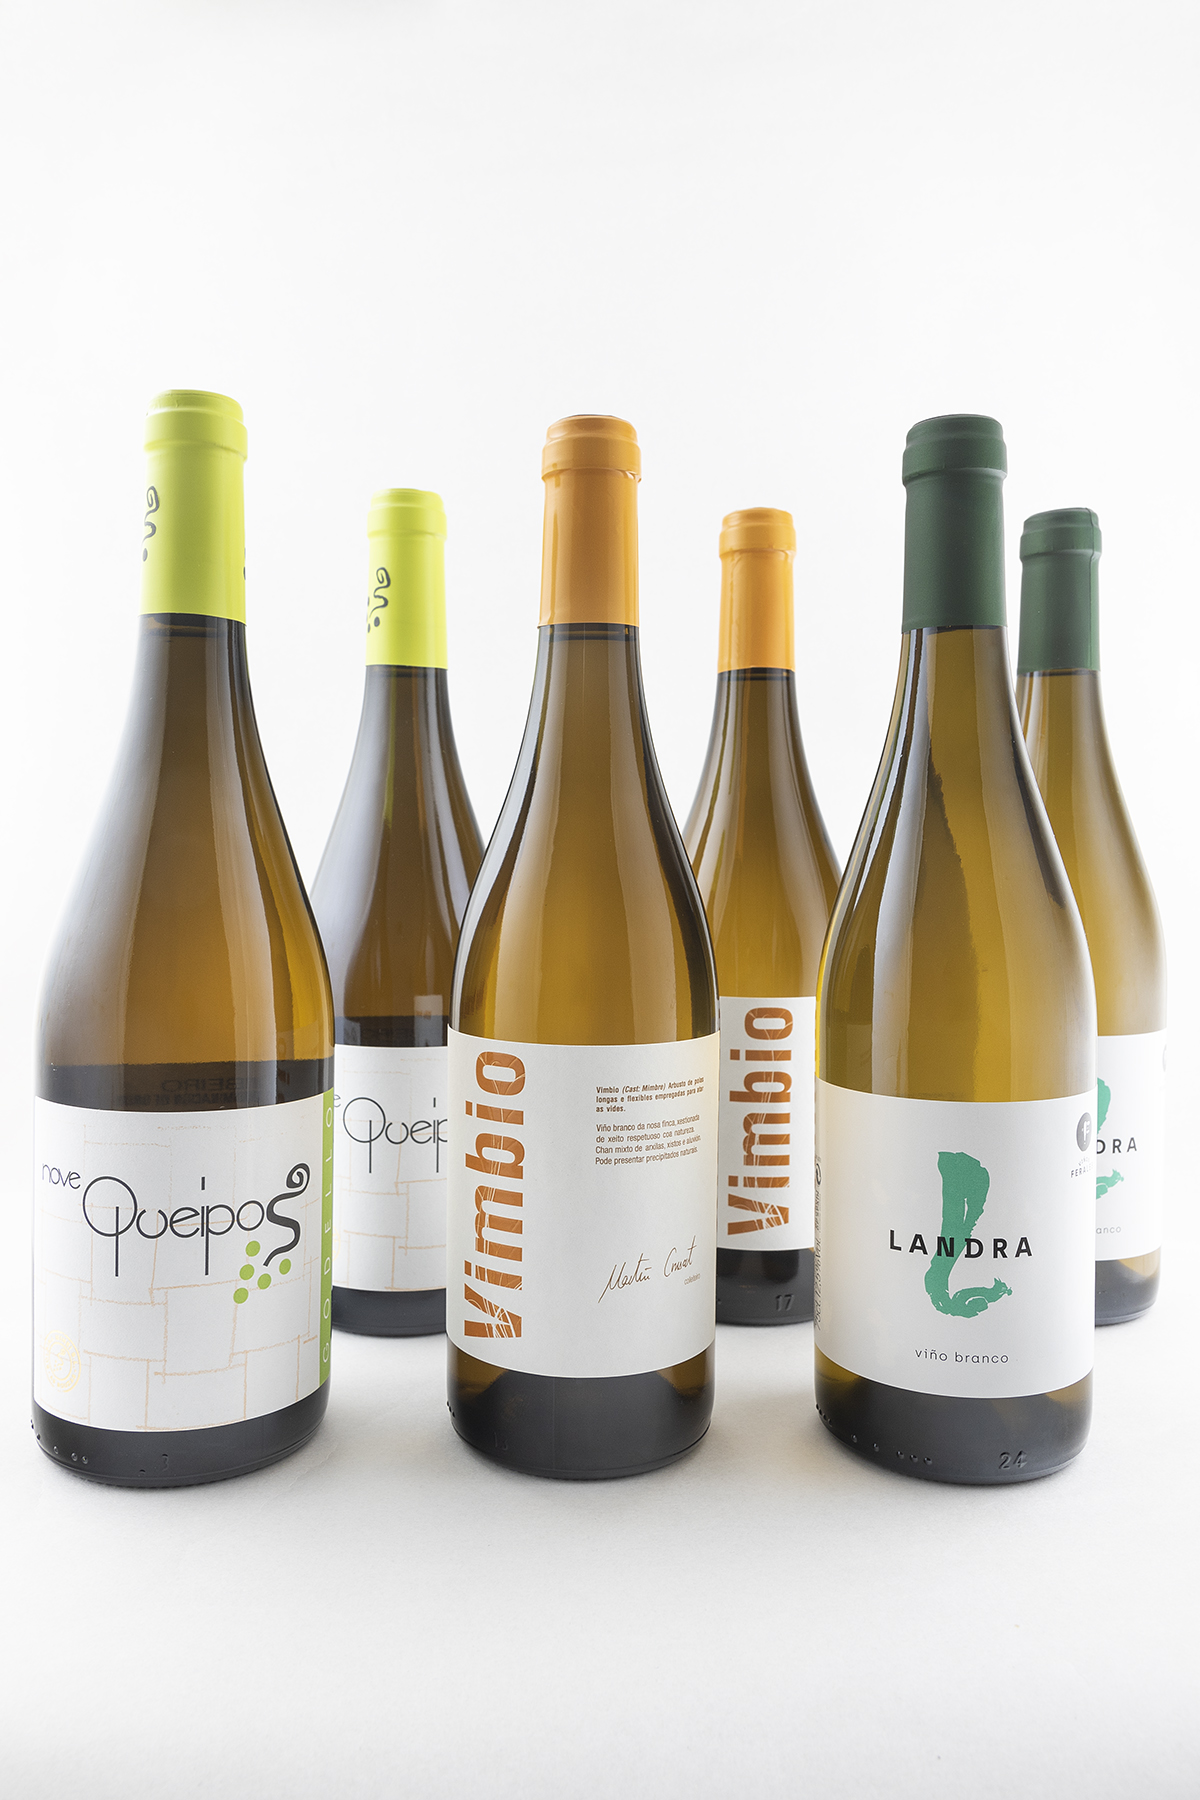 6 botellas | Vimbio | 81 €